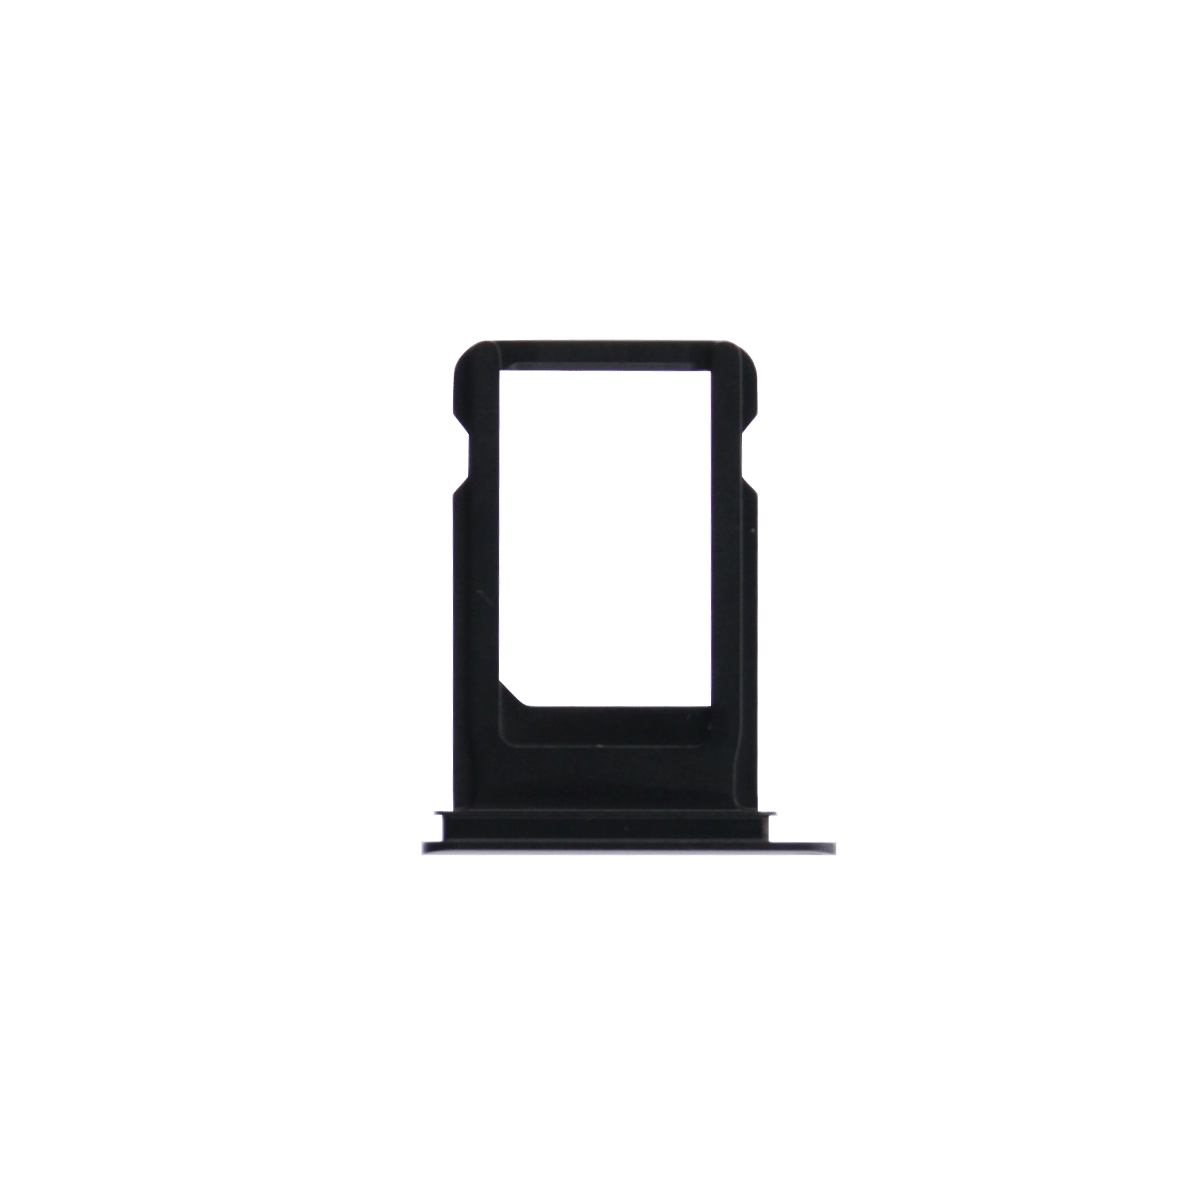 iPhone 7 SIM Card Tray Replacement